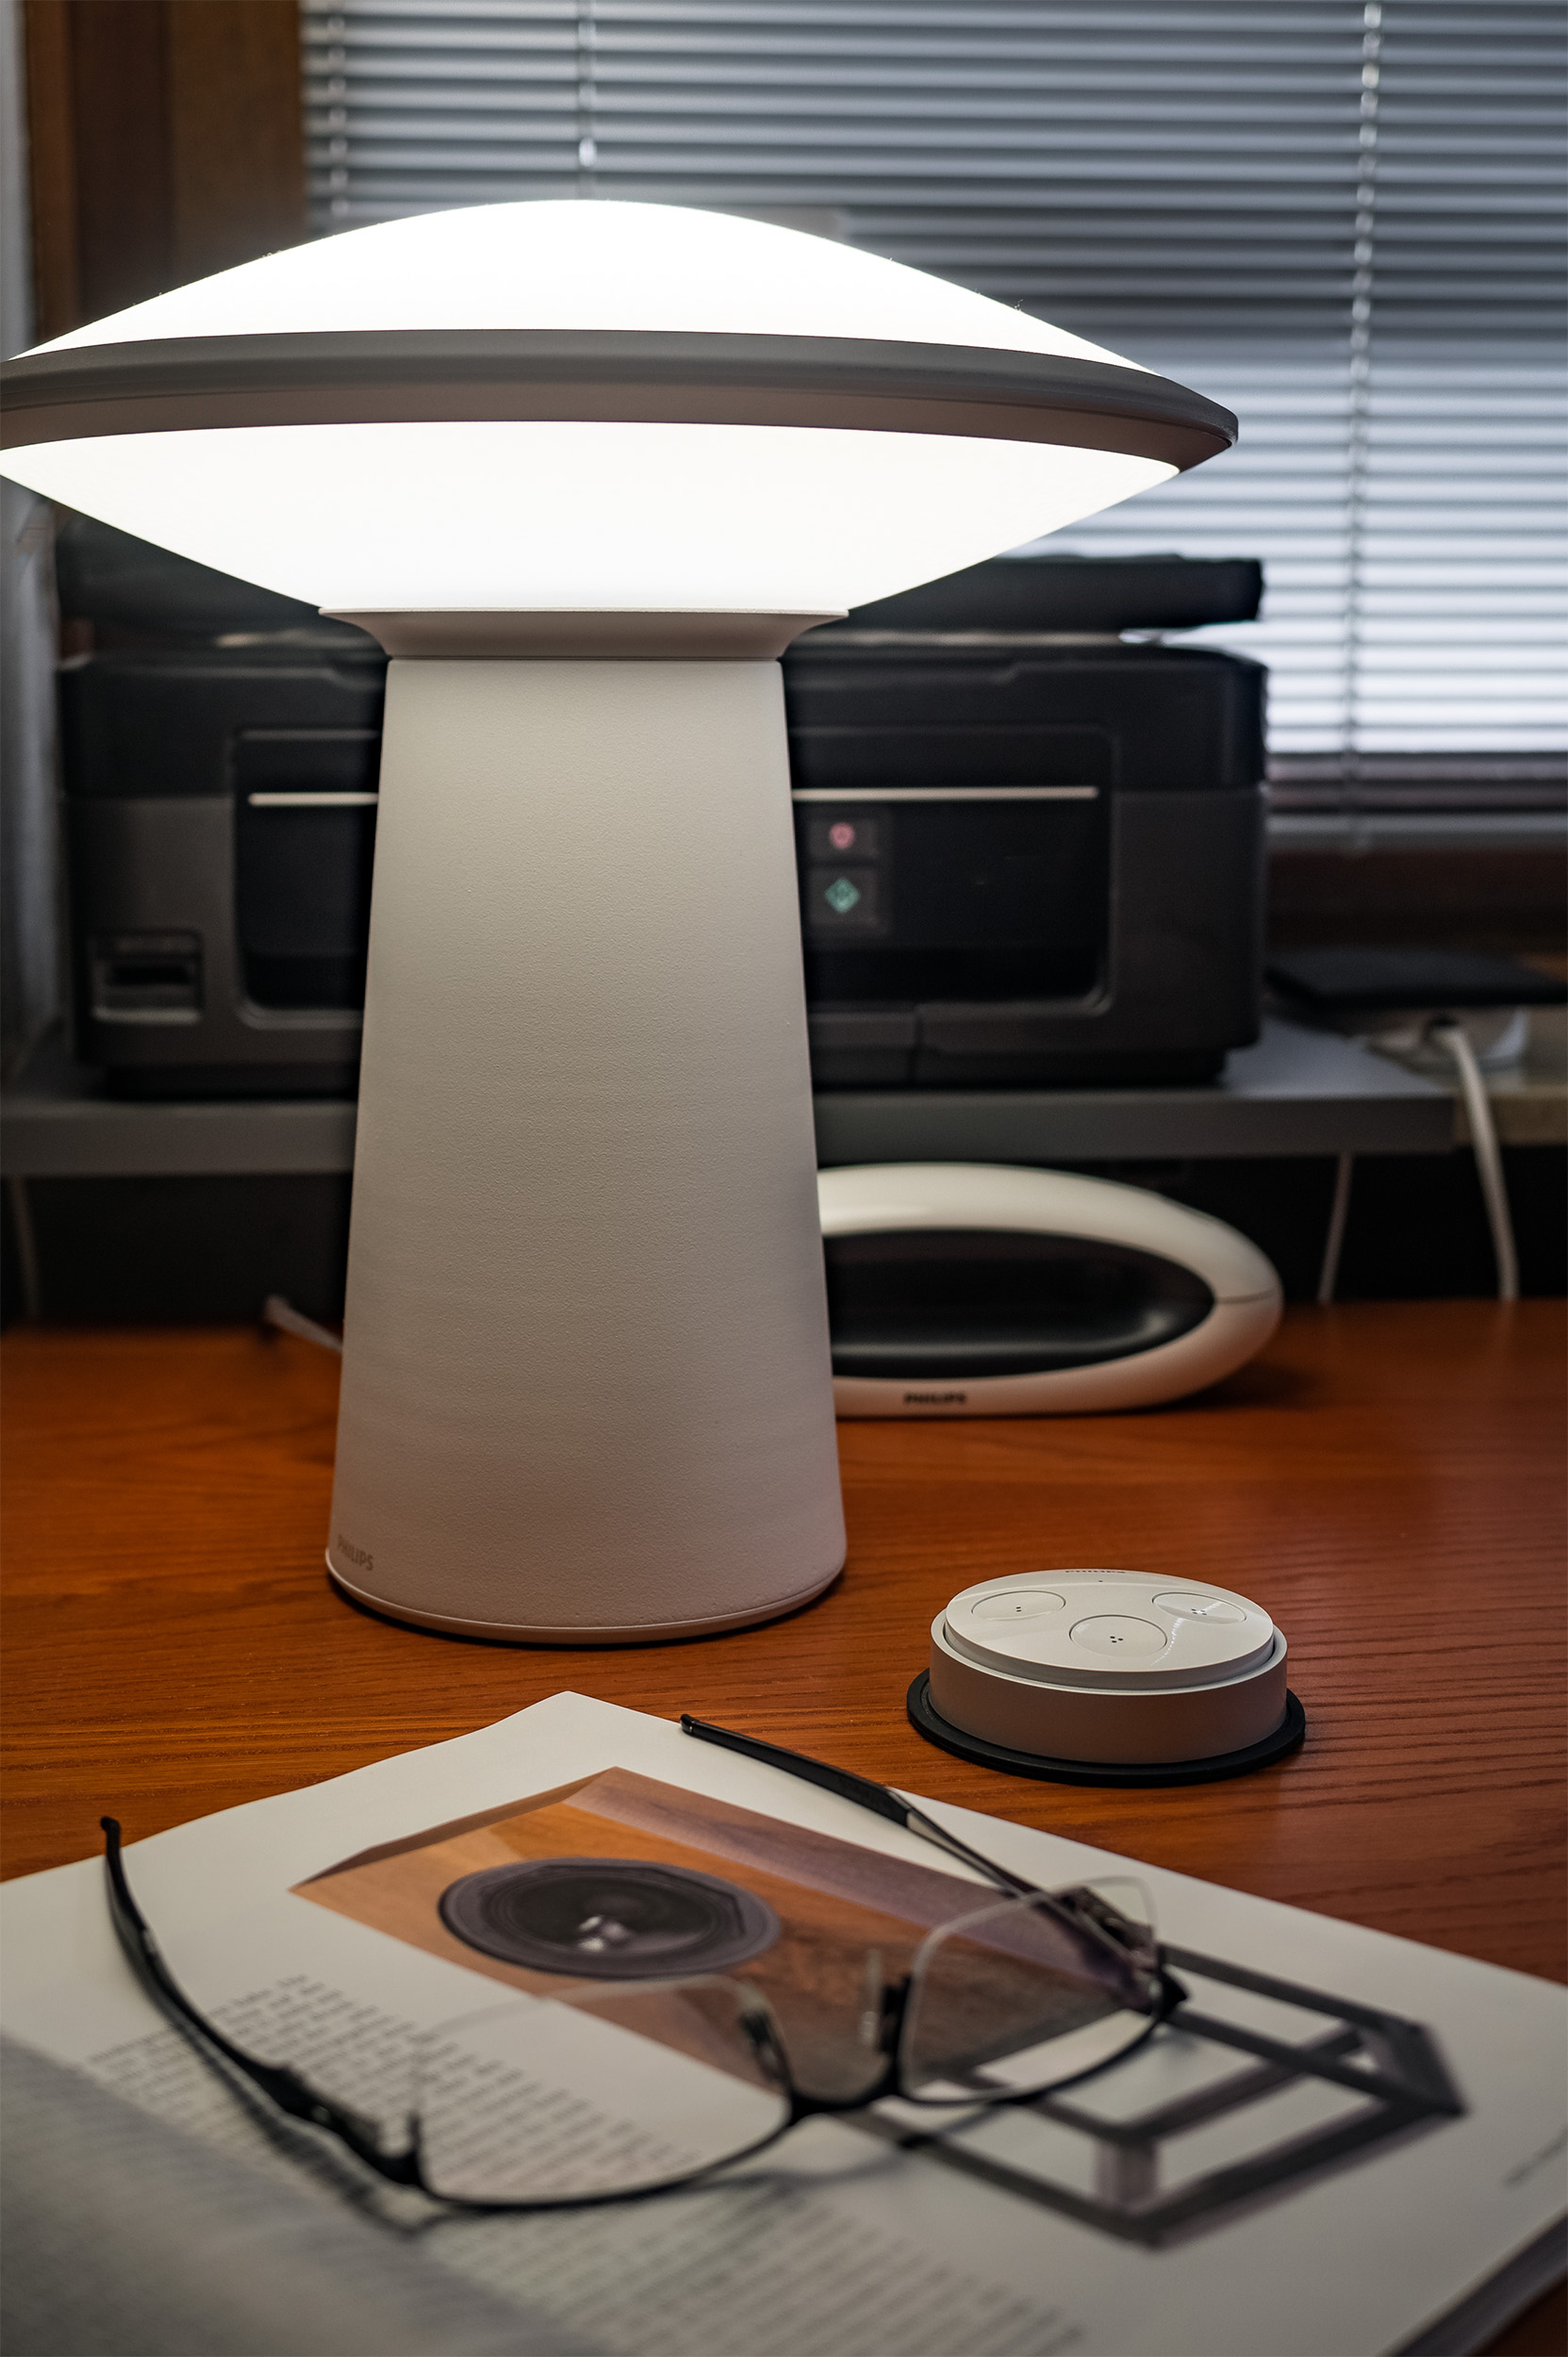 Praxistest Philips hue Lampensystem: Volle Lichtkontrolle mit iOS ...